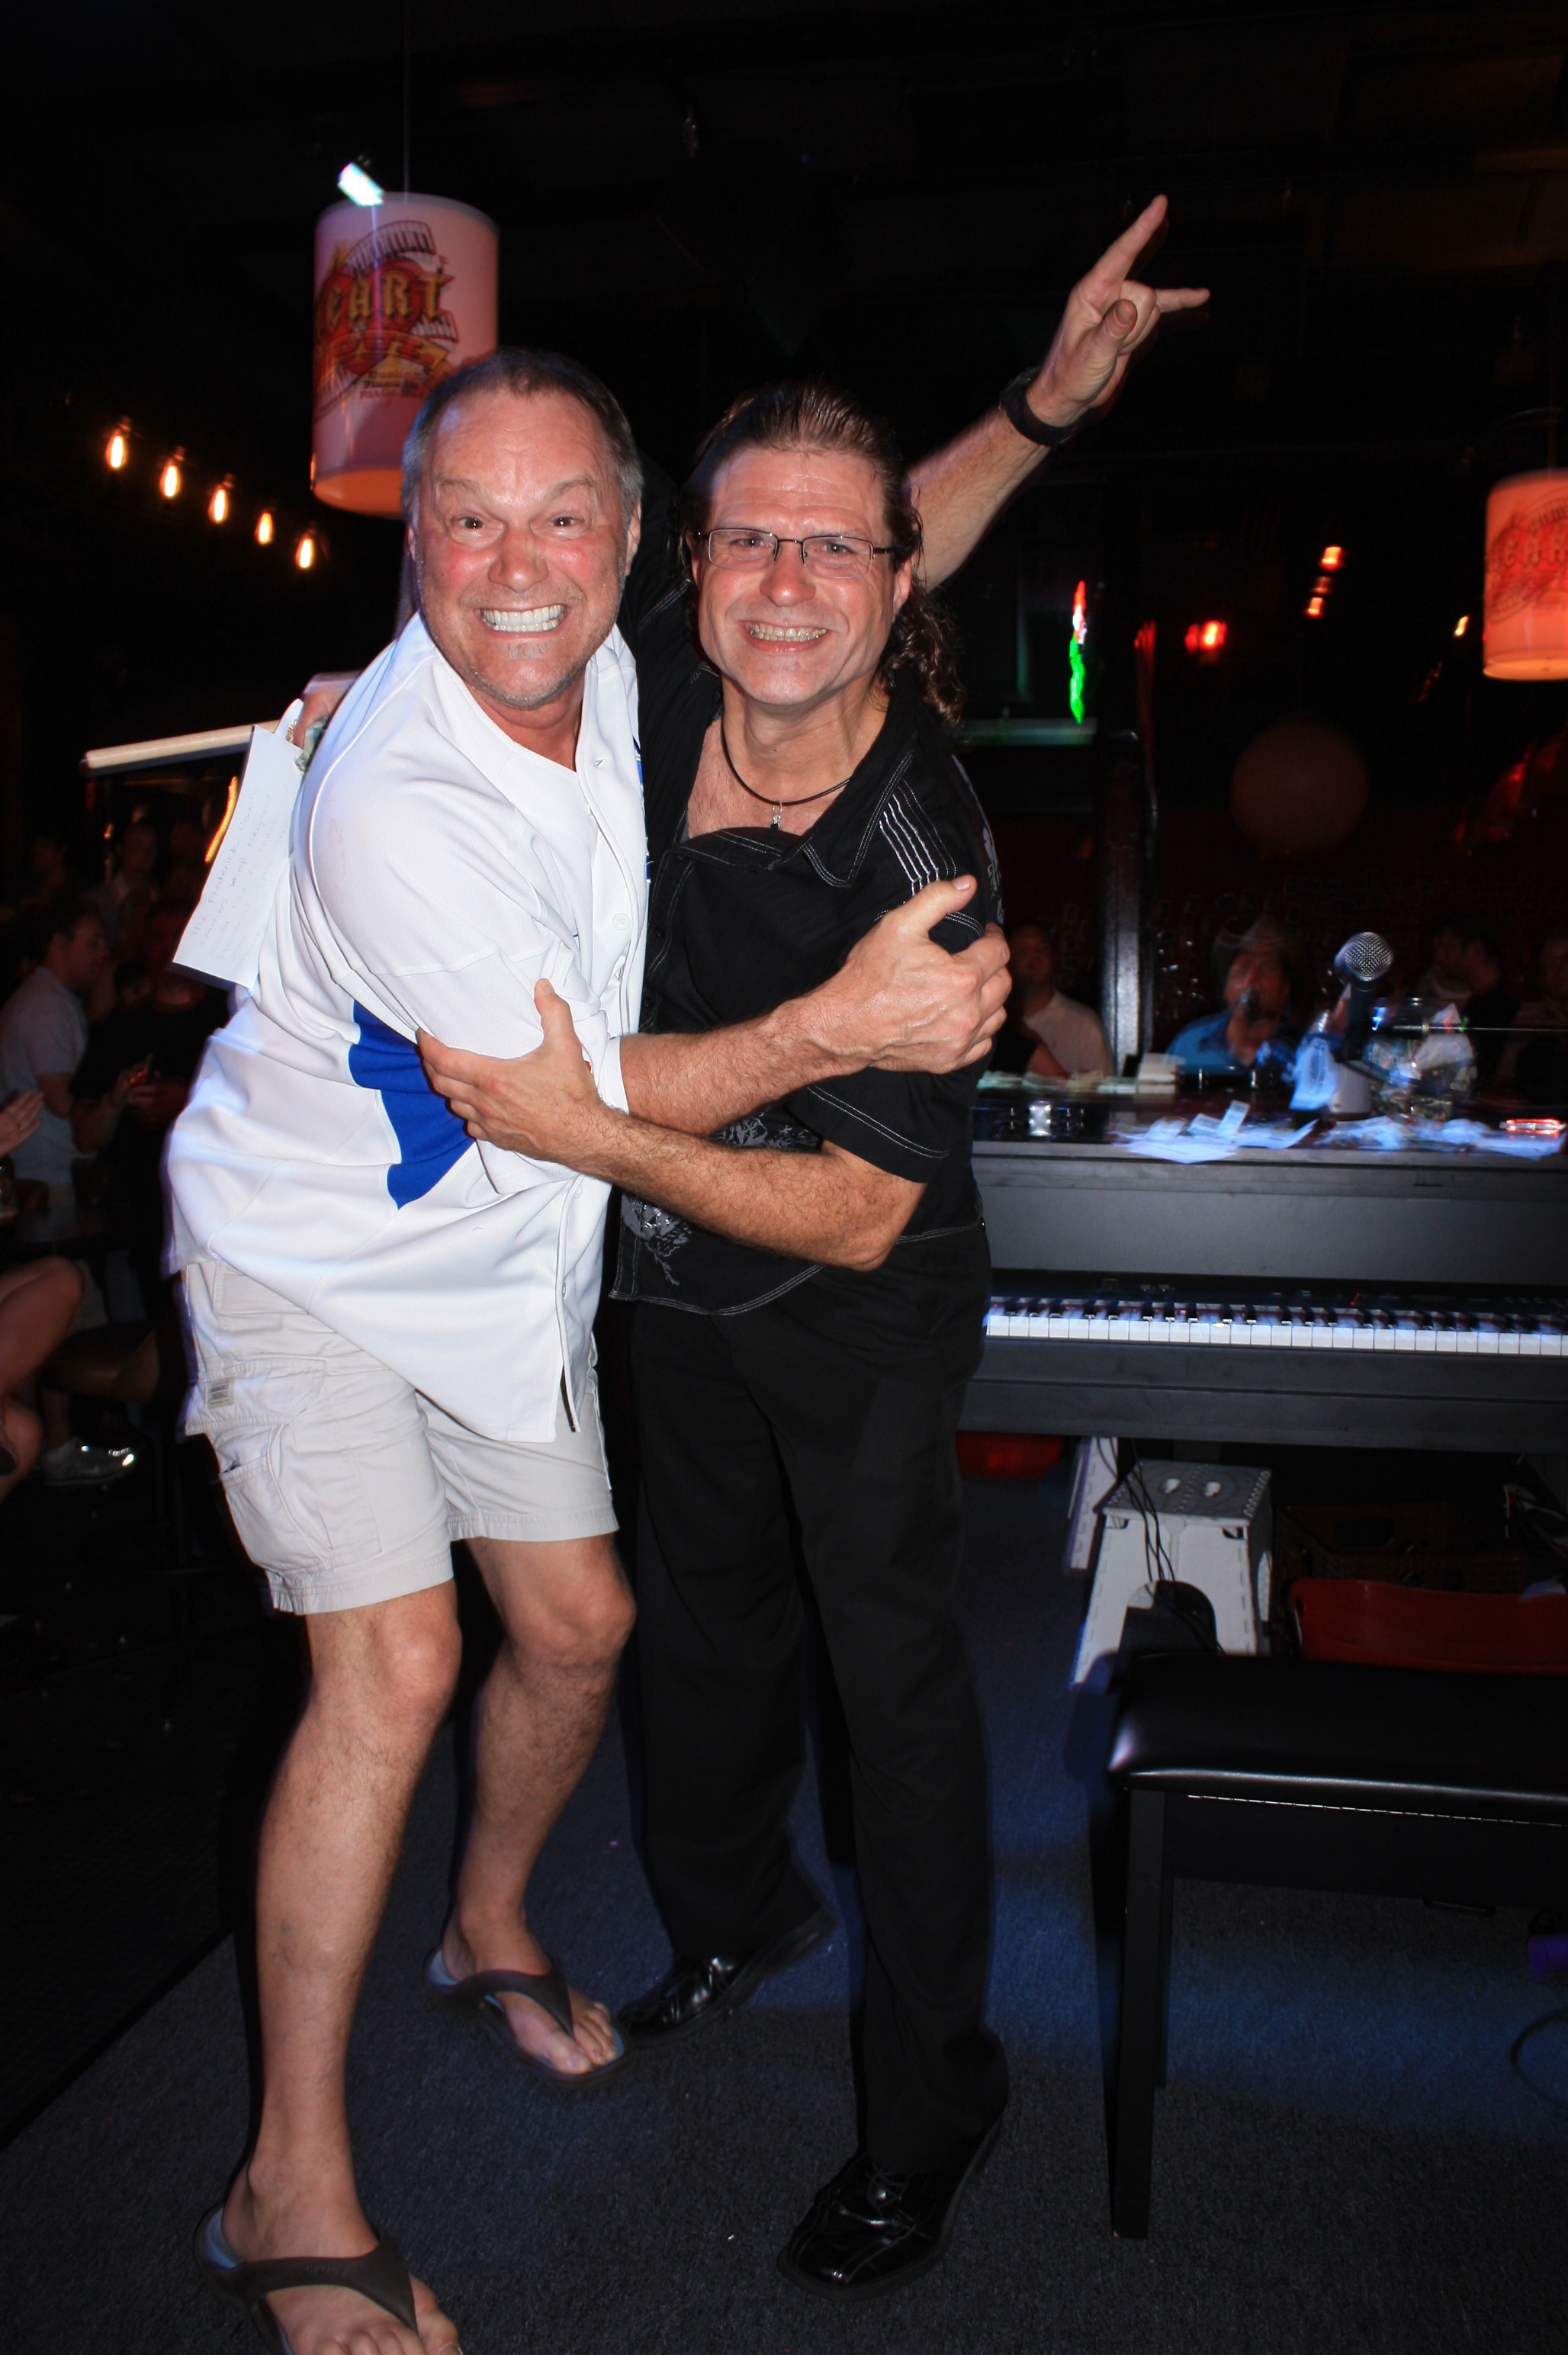 Chicago Dueling Pianos post-game at Sluggers – Aug 21